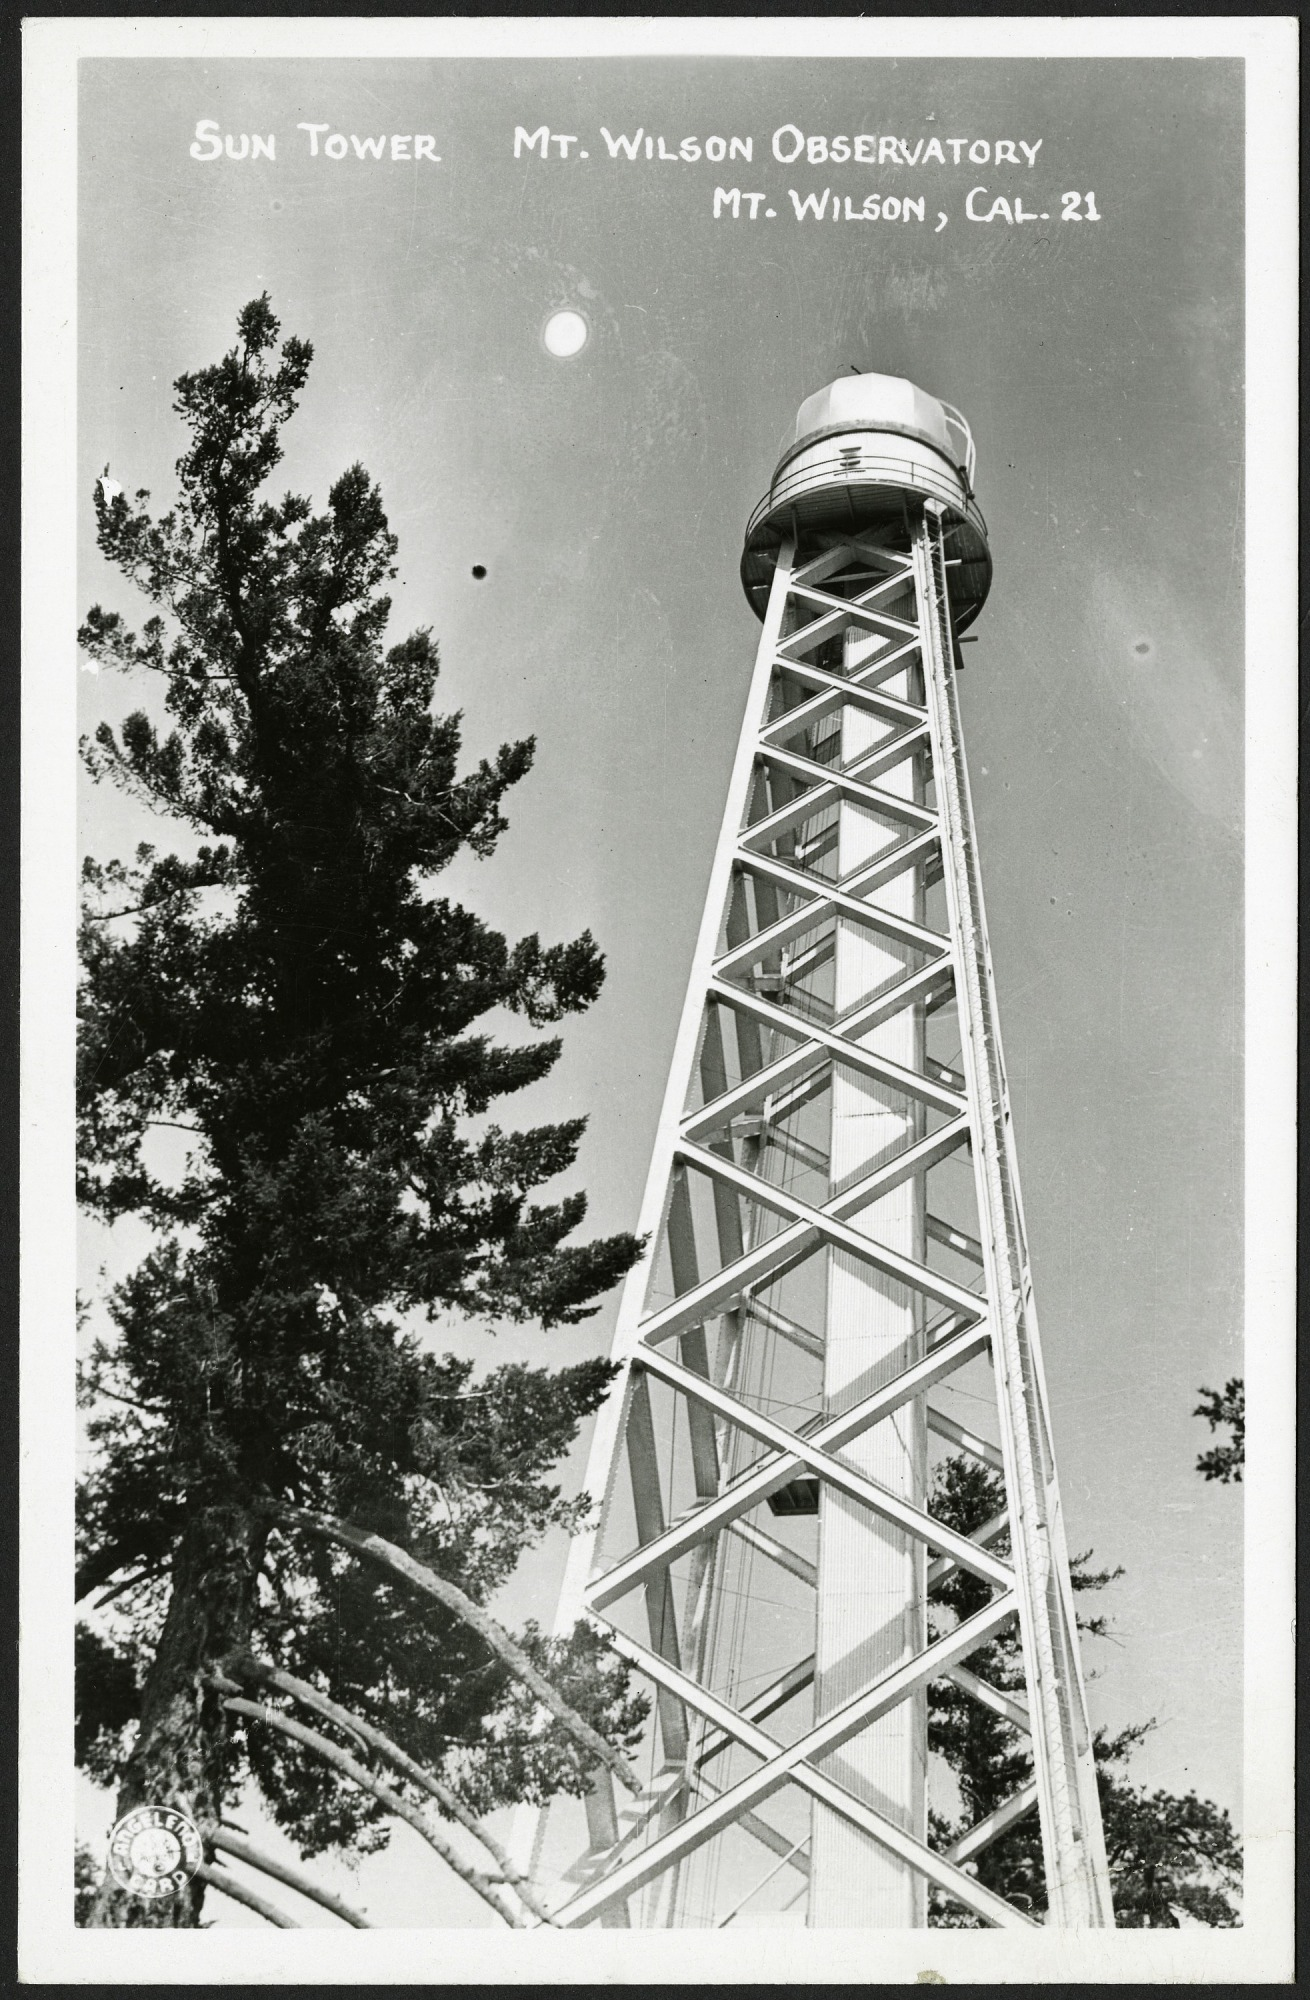 Postcard of Sun Tower at Mt. Wilson